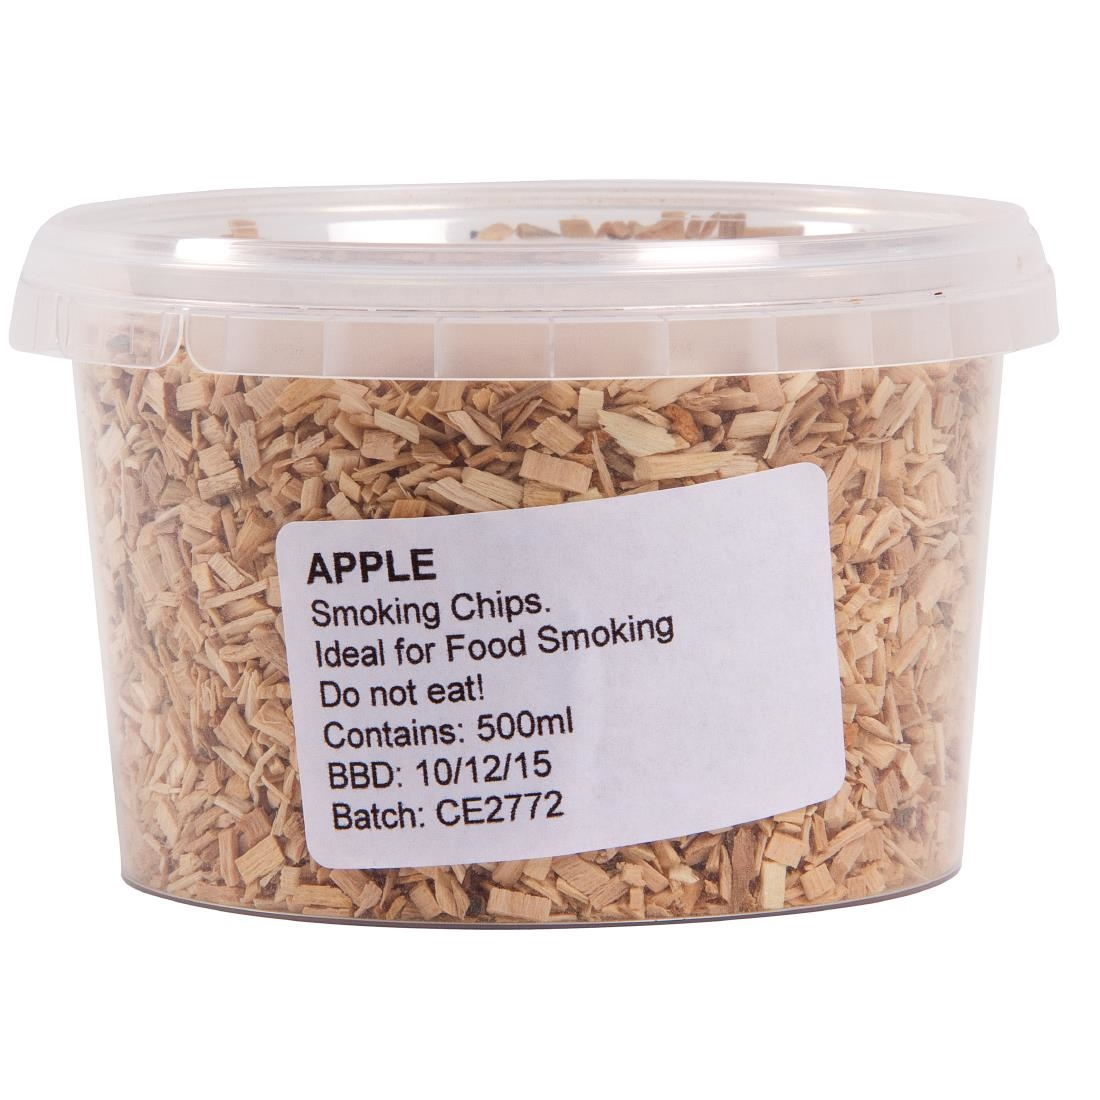 Image of PolyScience Applewood Smoking Chips